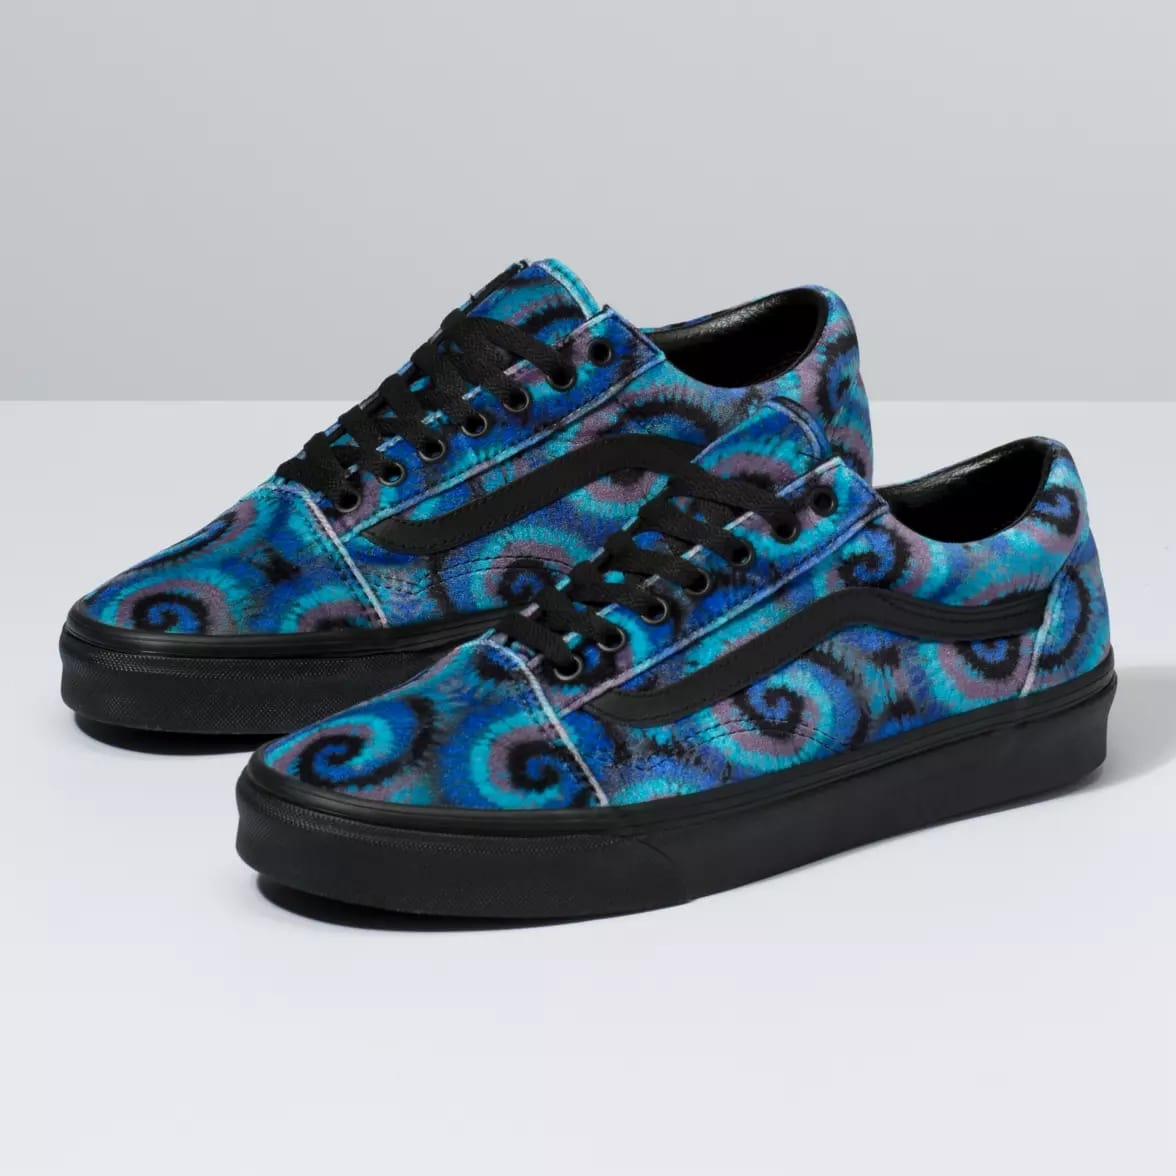 new vans shoes images